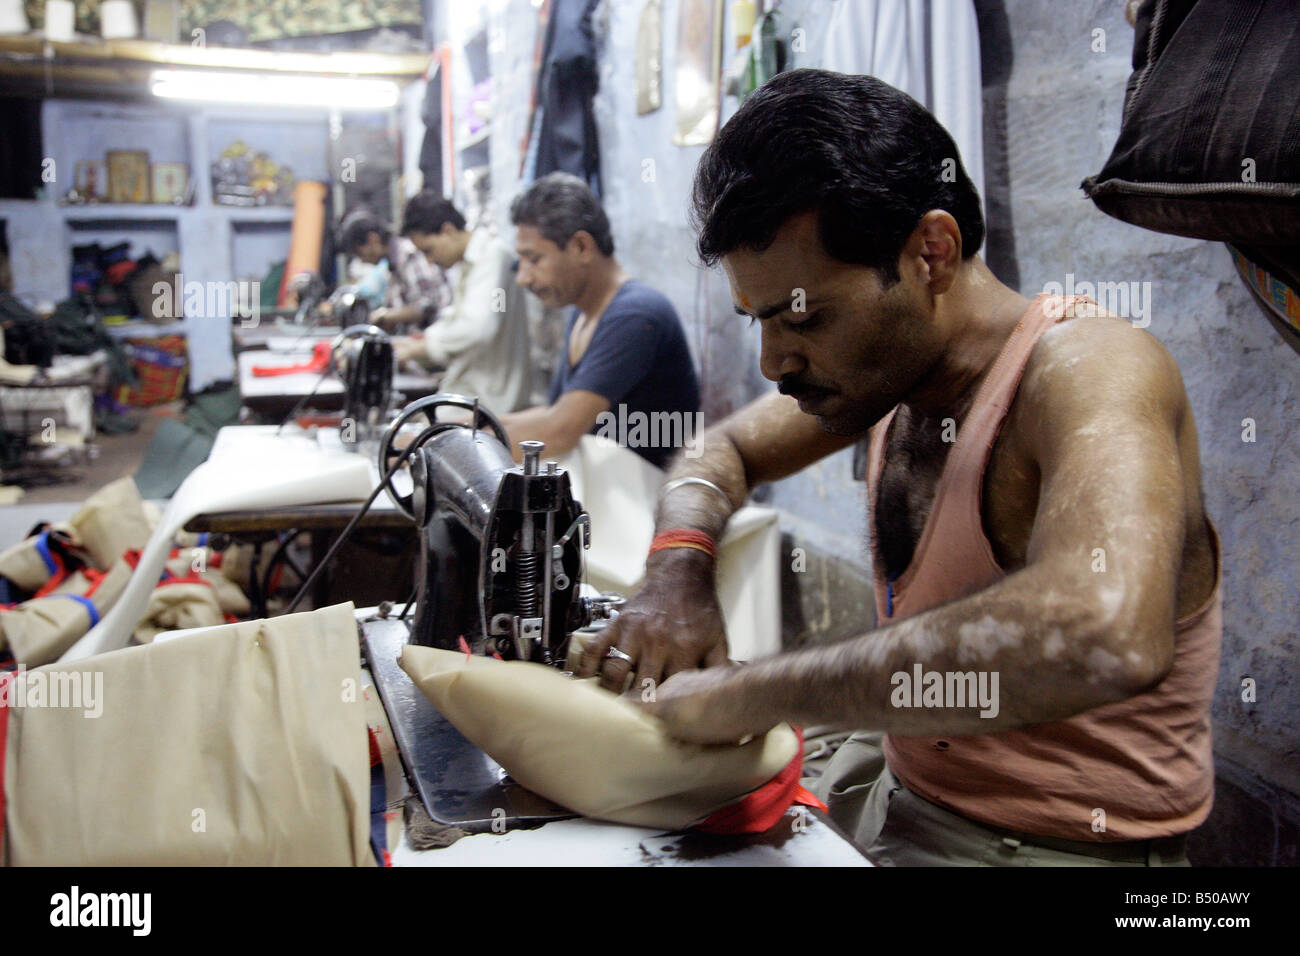 Men working in sewing factory in Jodhpur, Rajasthan, India - Stock Image